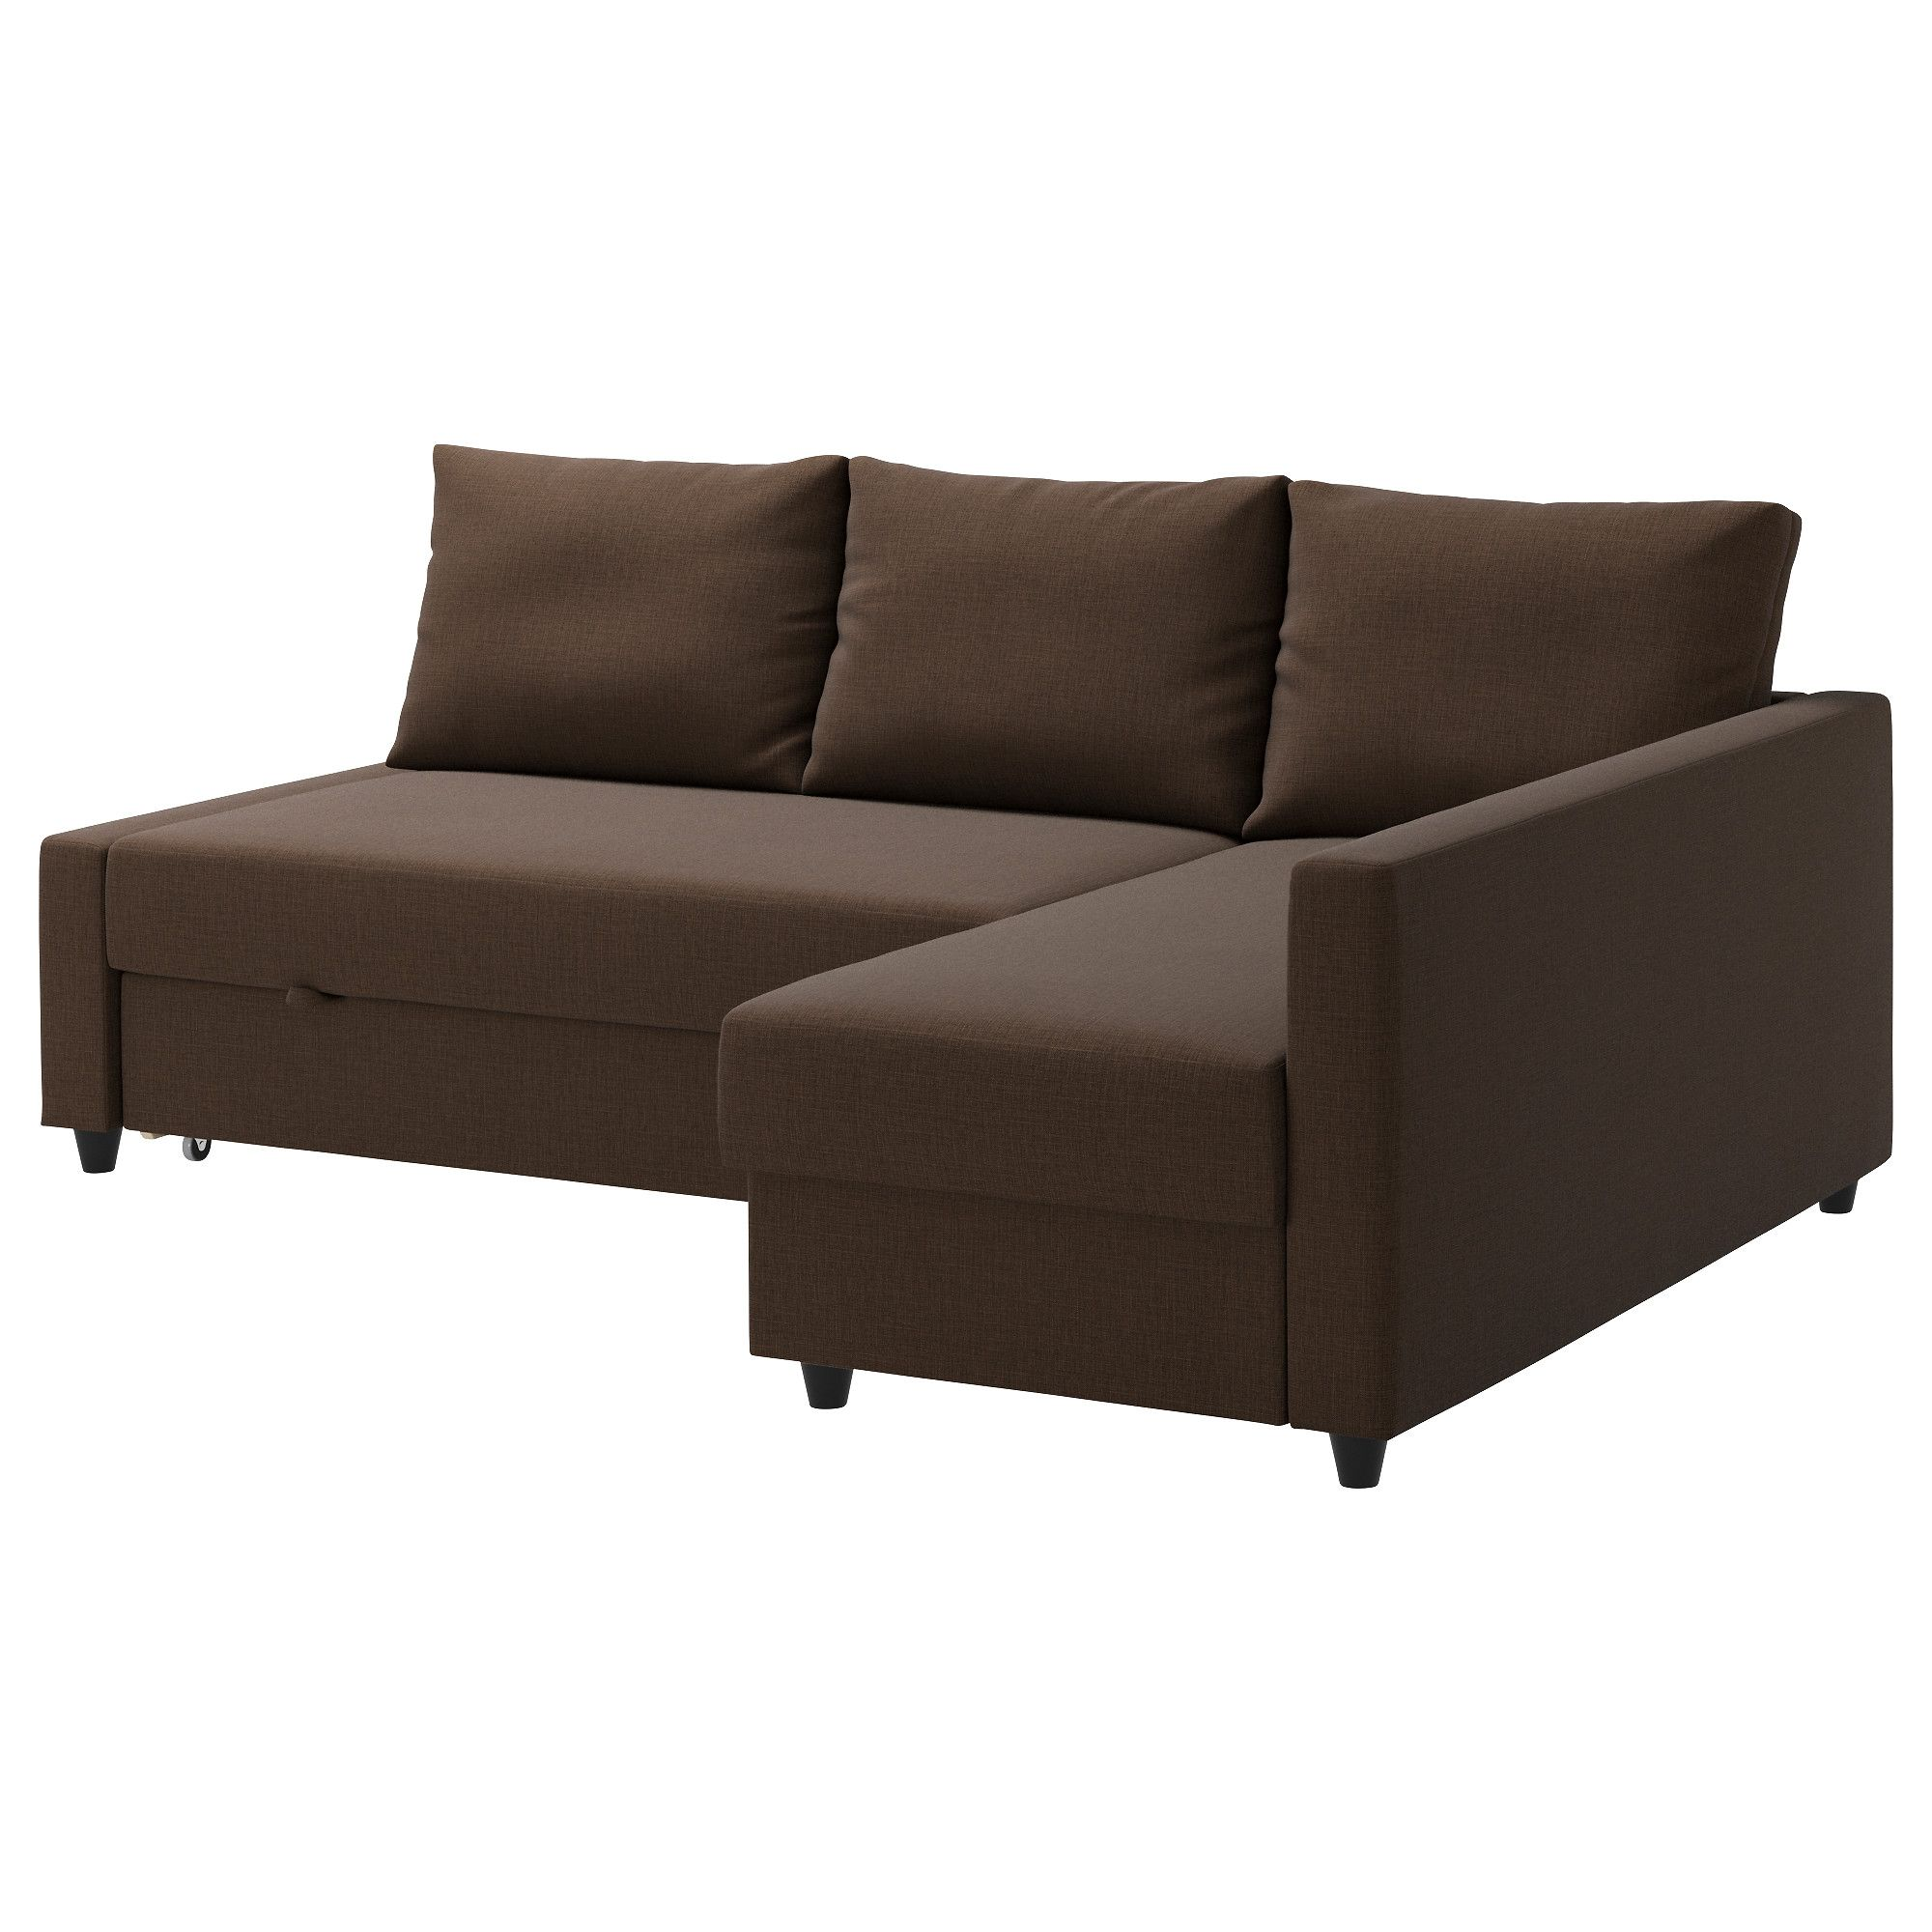 couch bed ikea. Home Furniture, IKEA Catalogue, Bed, Sofa, Kitchen - Couch Bed Ikea E